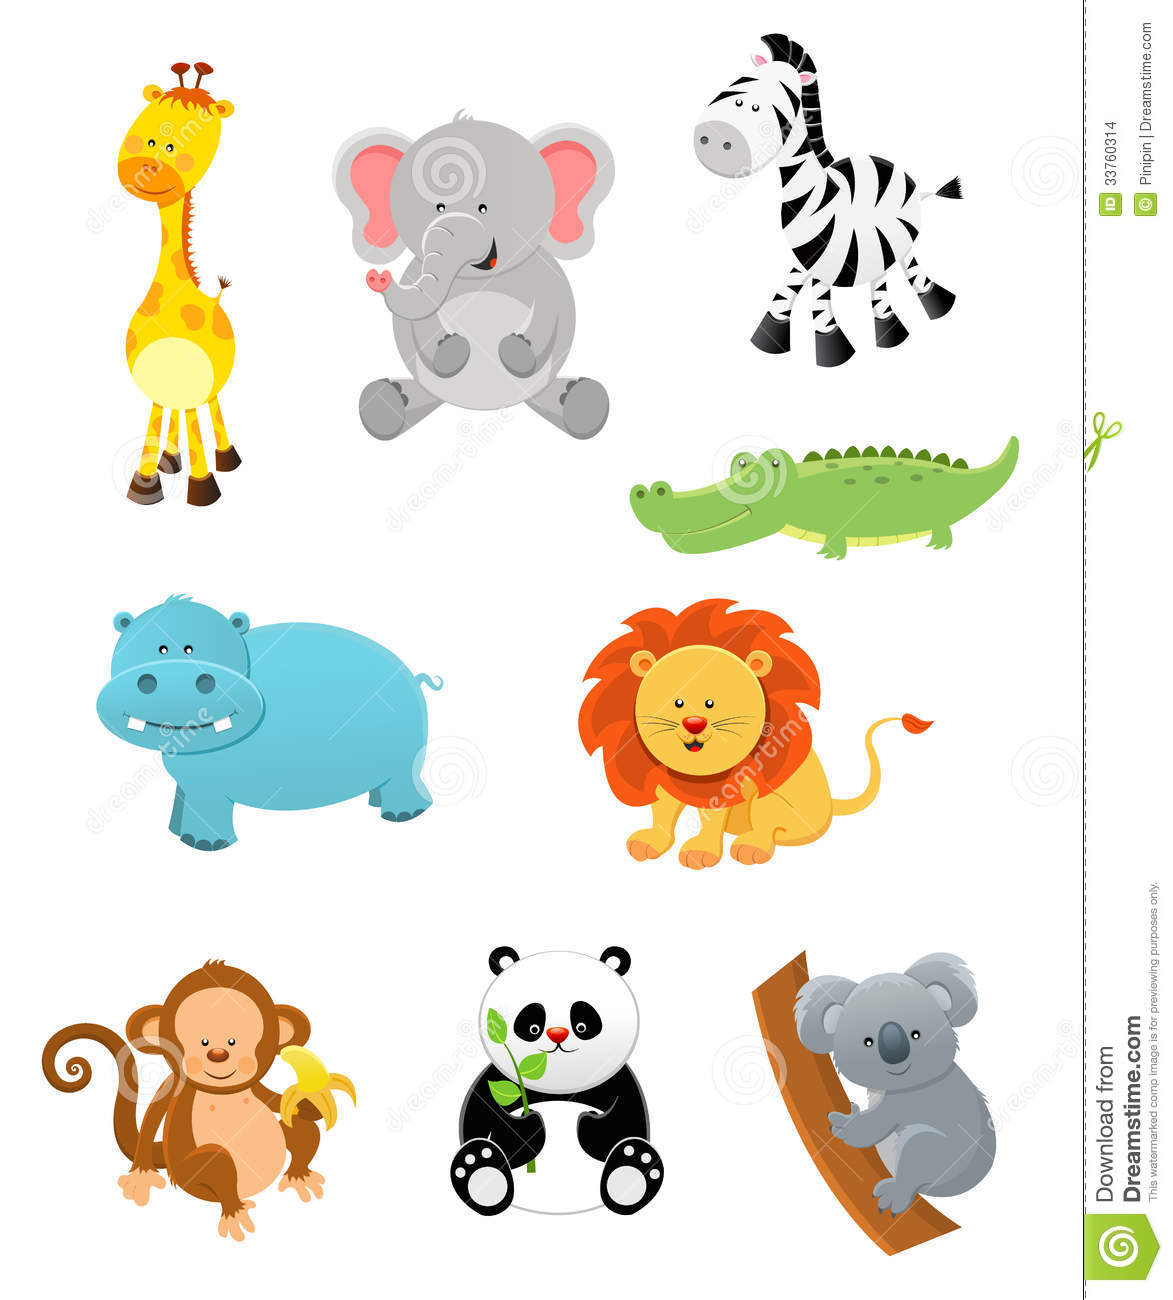 Image Gallery jungle zoo animal cartoon